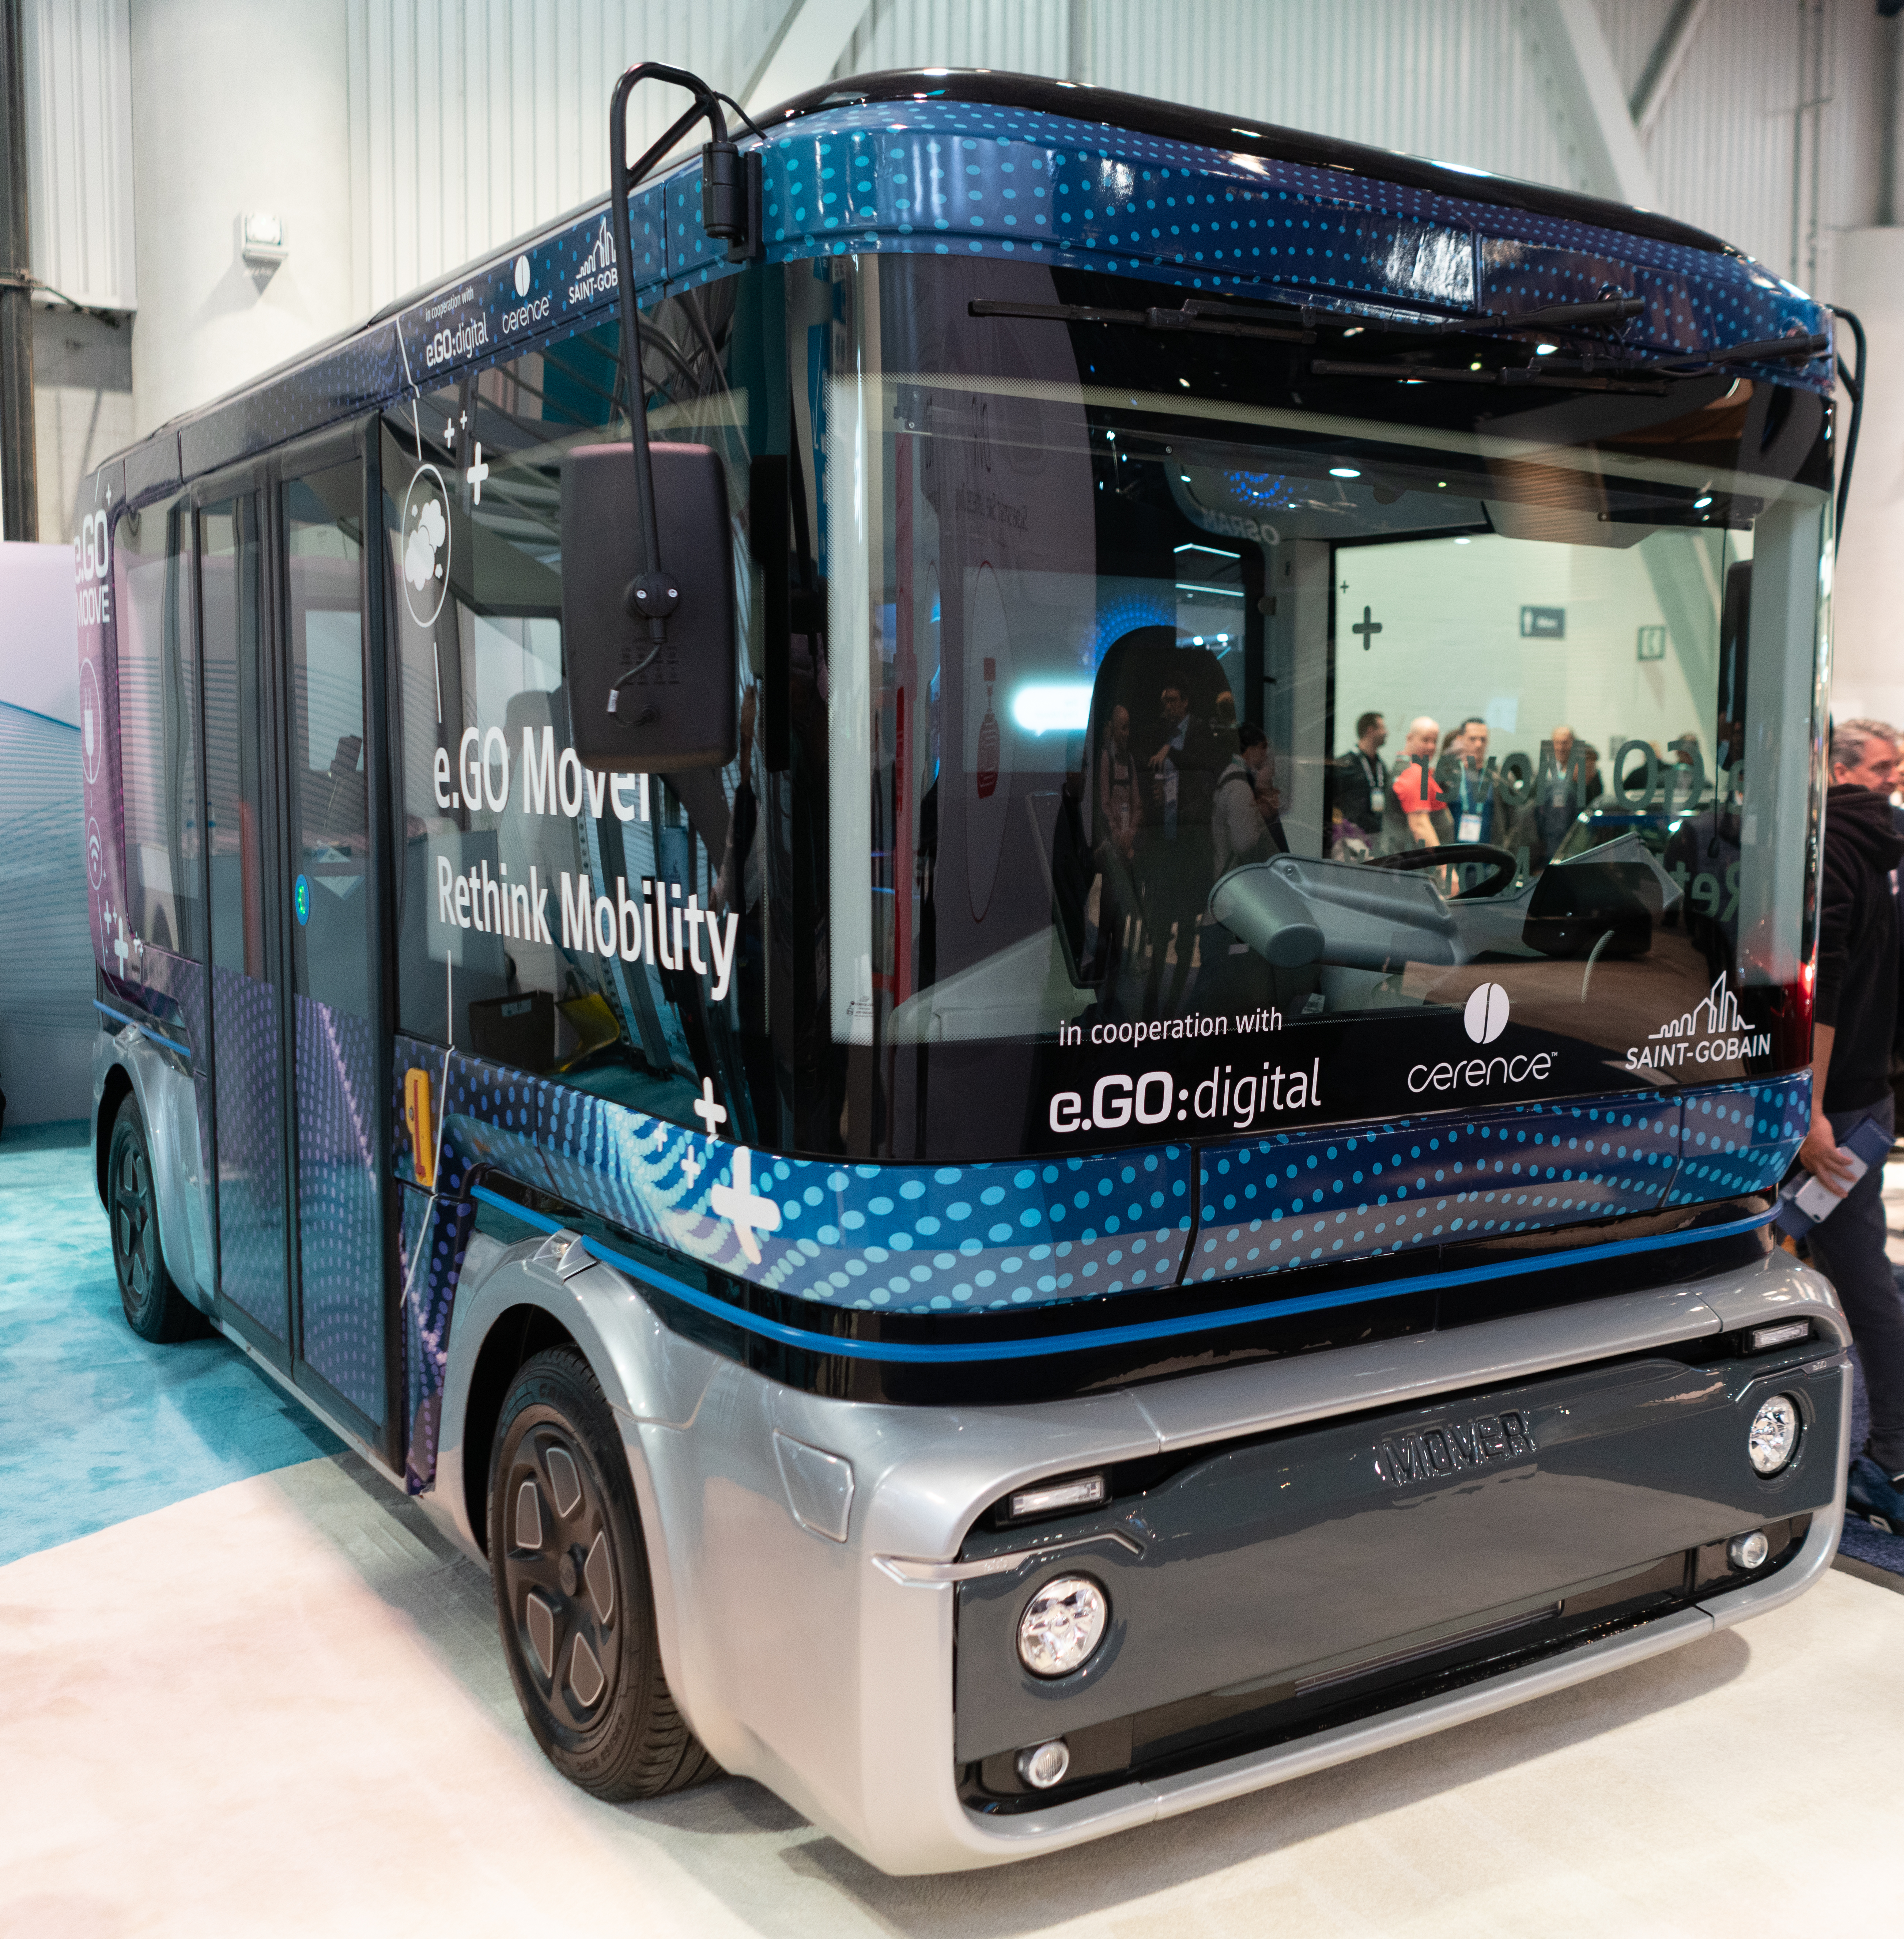 e.GO, a fully autonomous electric bus presented at CES 2020 (credits: Duncan Rawlinson - Duncan.co https://duncan.co/ces/ / Flickr Creative Commons Attribution-NonCommercial 2.0 Generic (CC BY-NC 2.0))